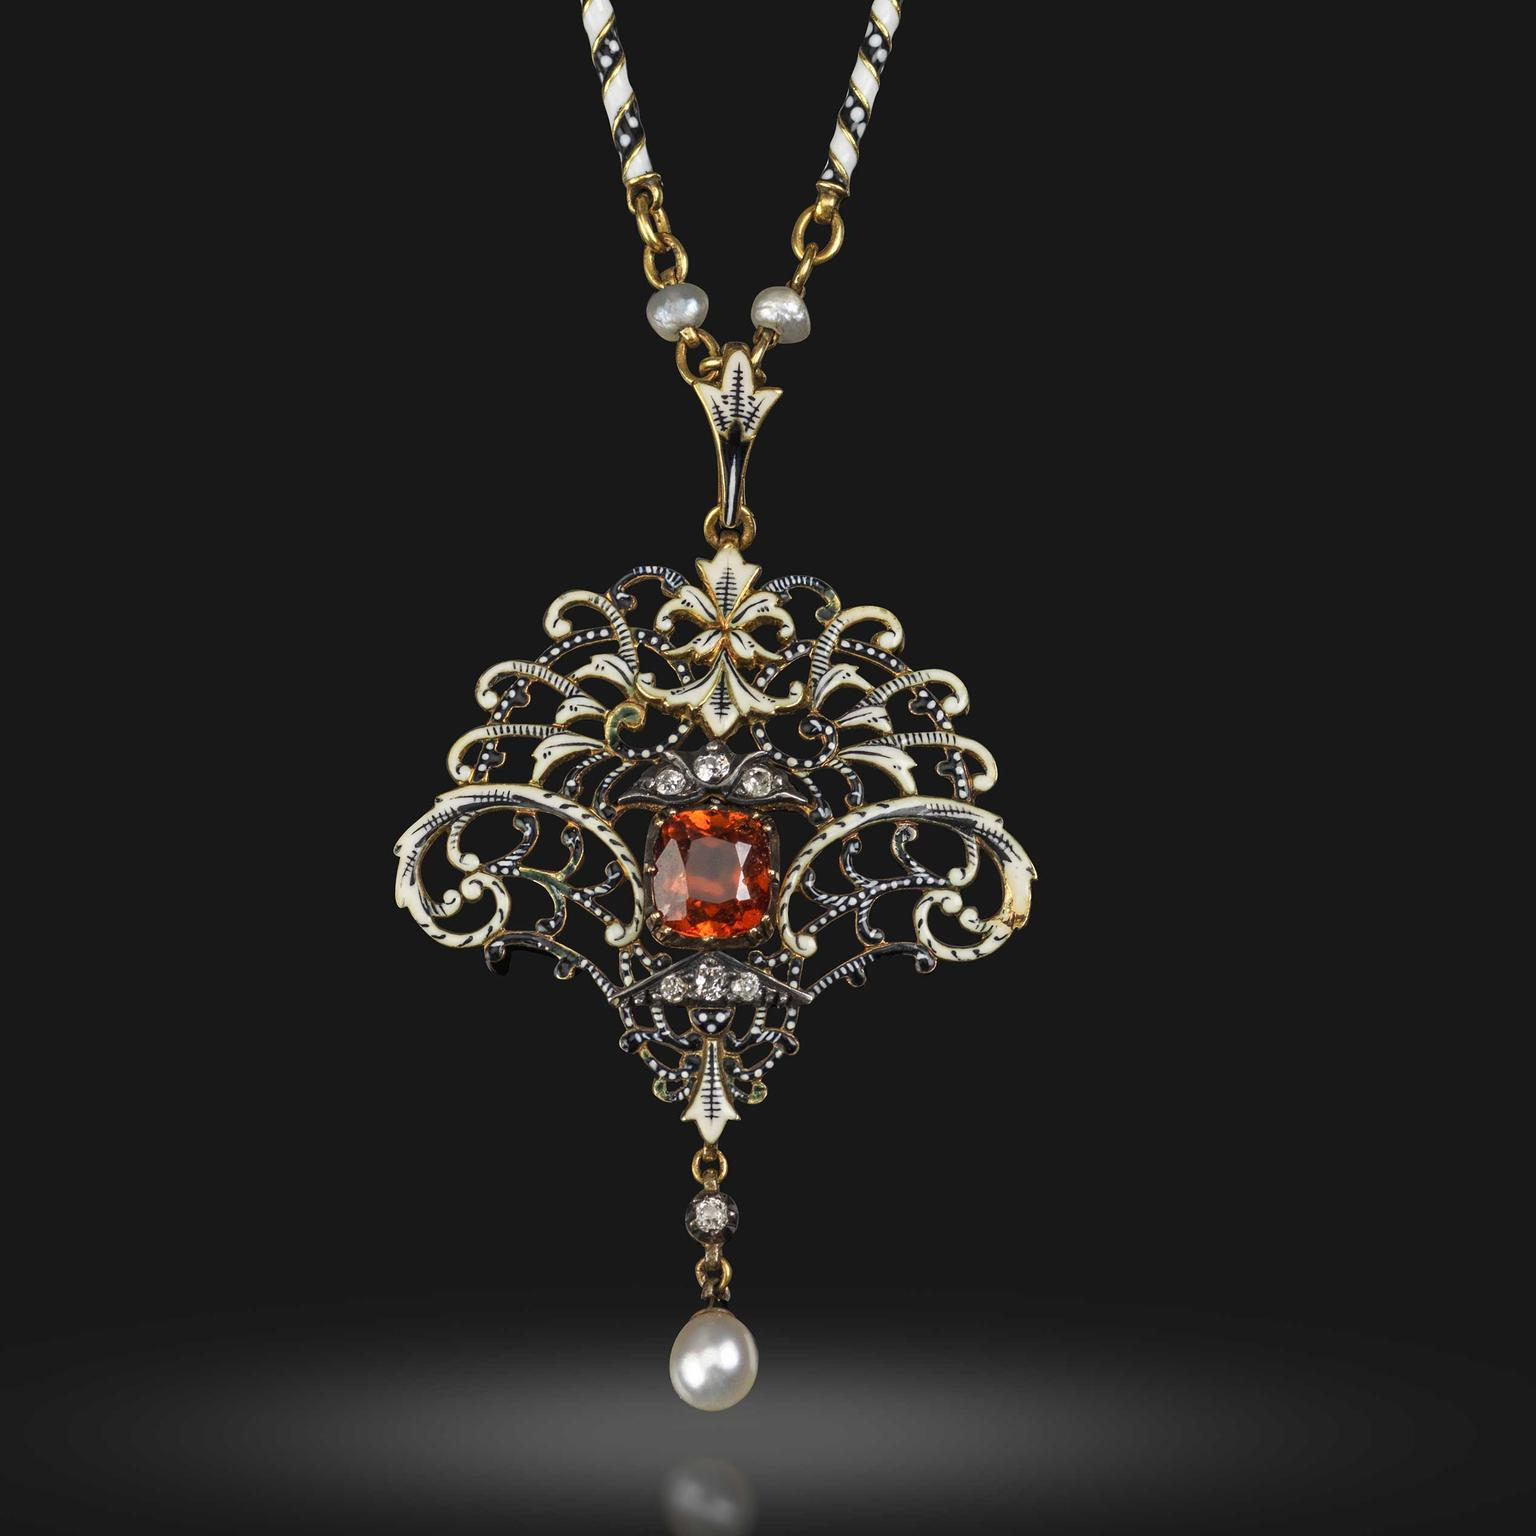 Lot 292 Giuliano 1896 garnet pendant Woolley and Wallis auction £5000 - £10000